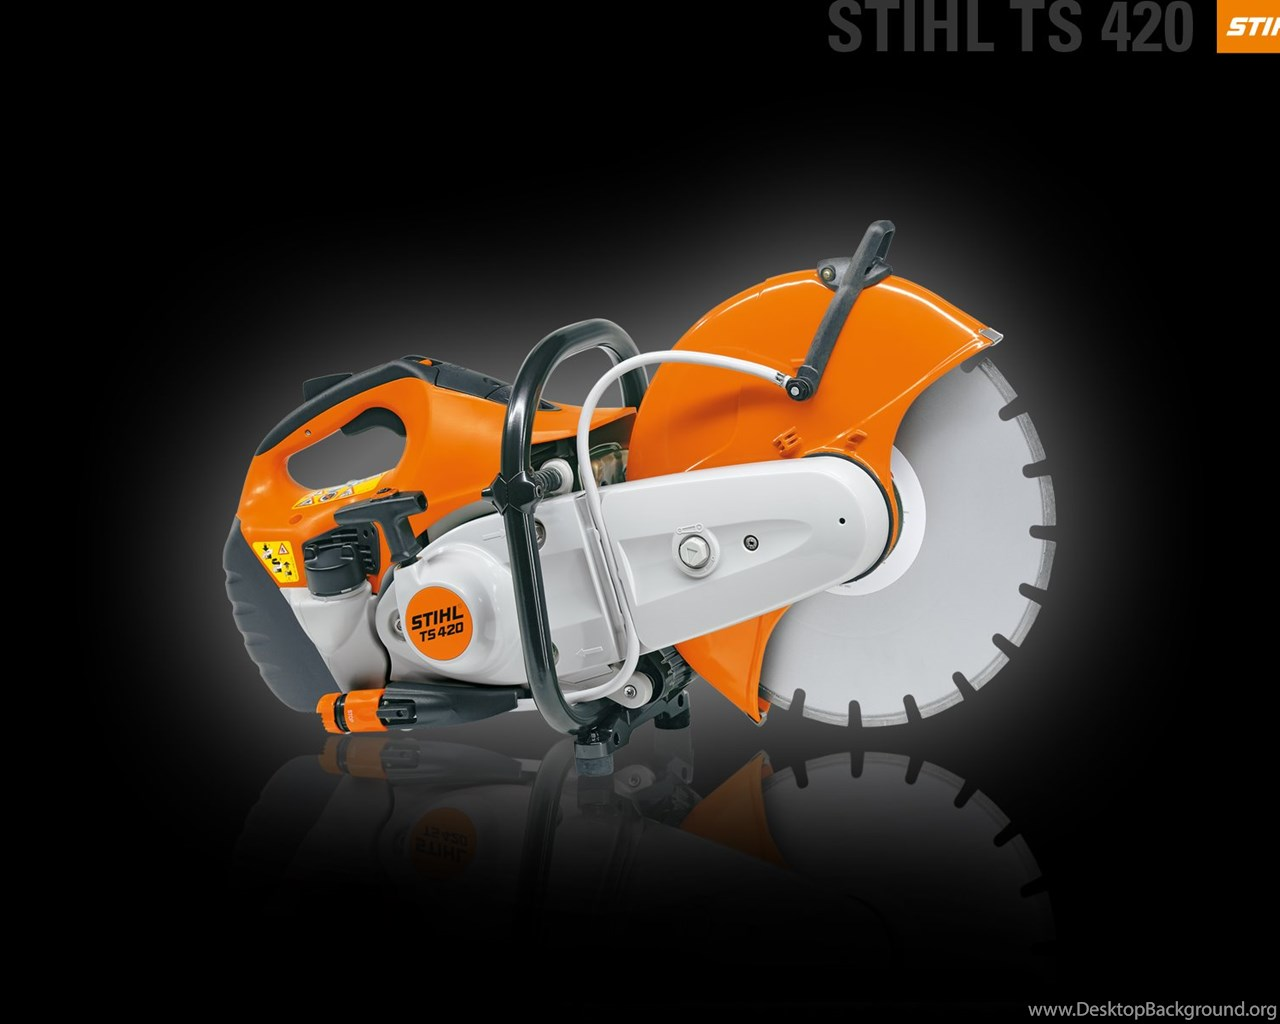 Stihl Wallpaper Backgrounds In Hd   Stihl Saw Hd Wallpapers 1280x1024